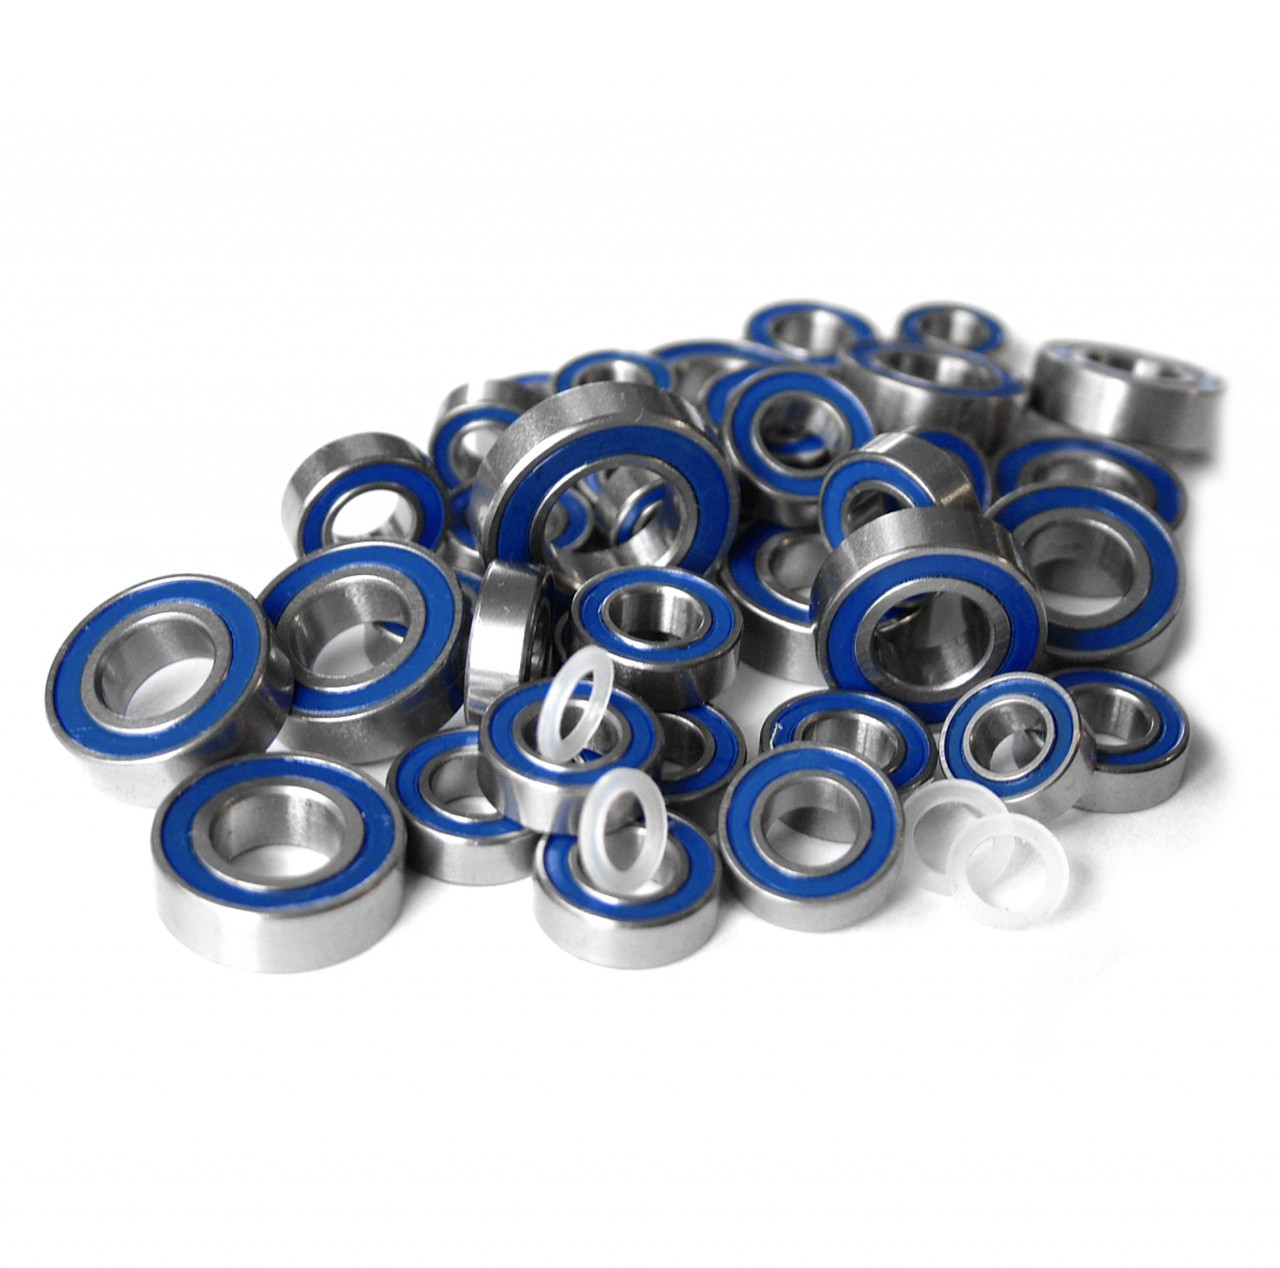 Team Associated Monter GT (MGT) & Rival full blue rubber sealed bearing kit.  Compete kit has all bearings as well as the nylon spacers for the wheel bearings.